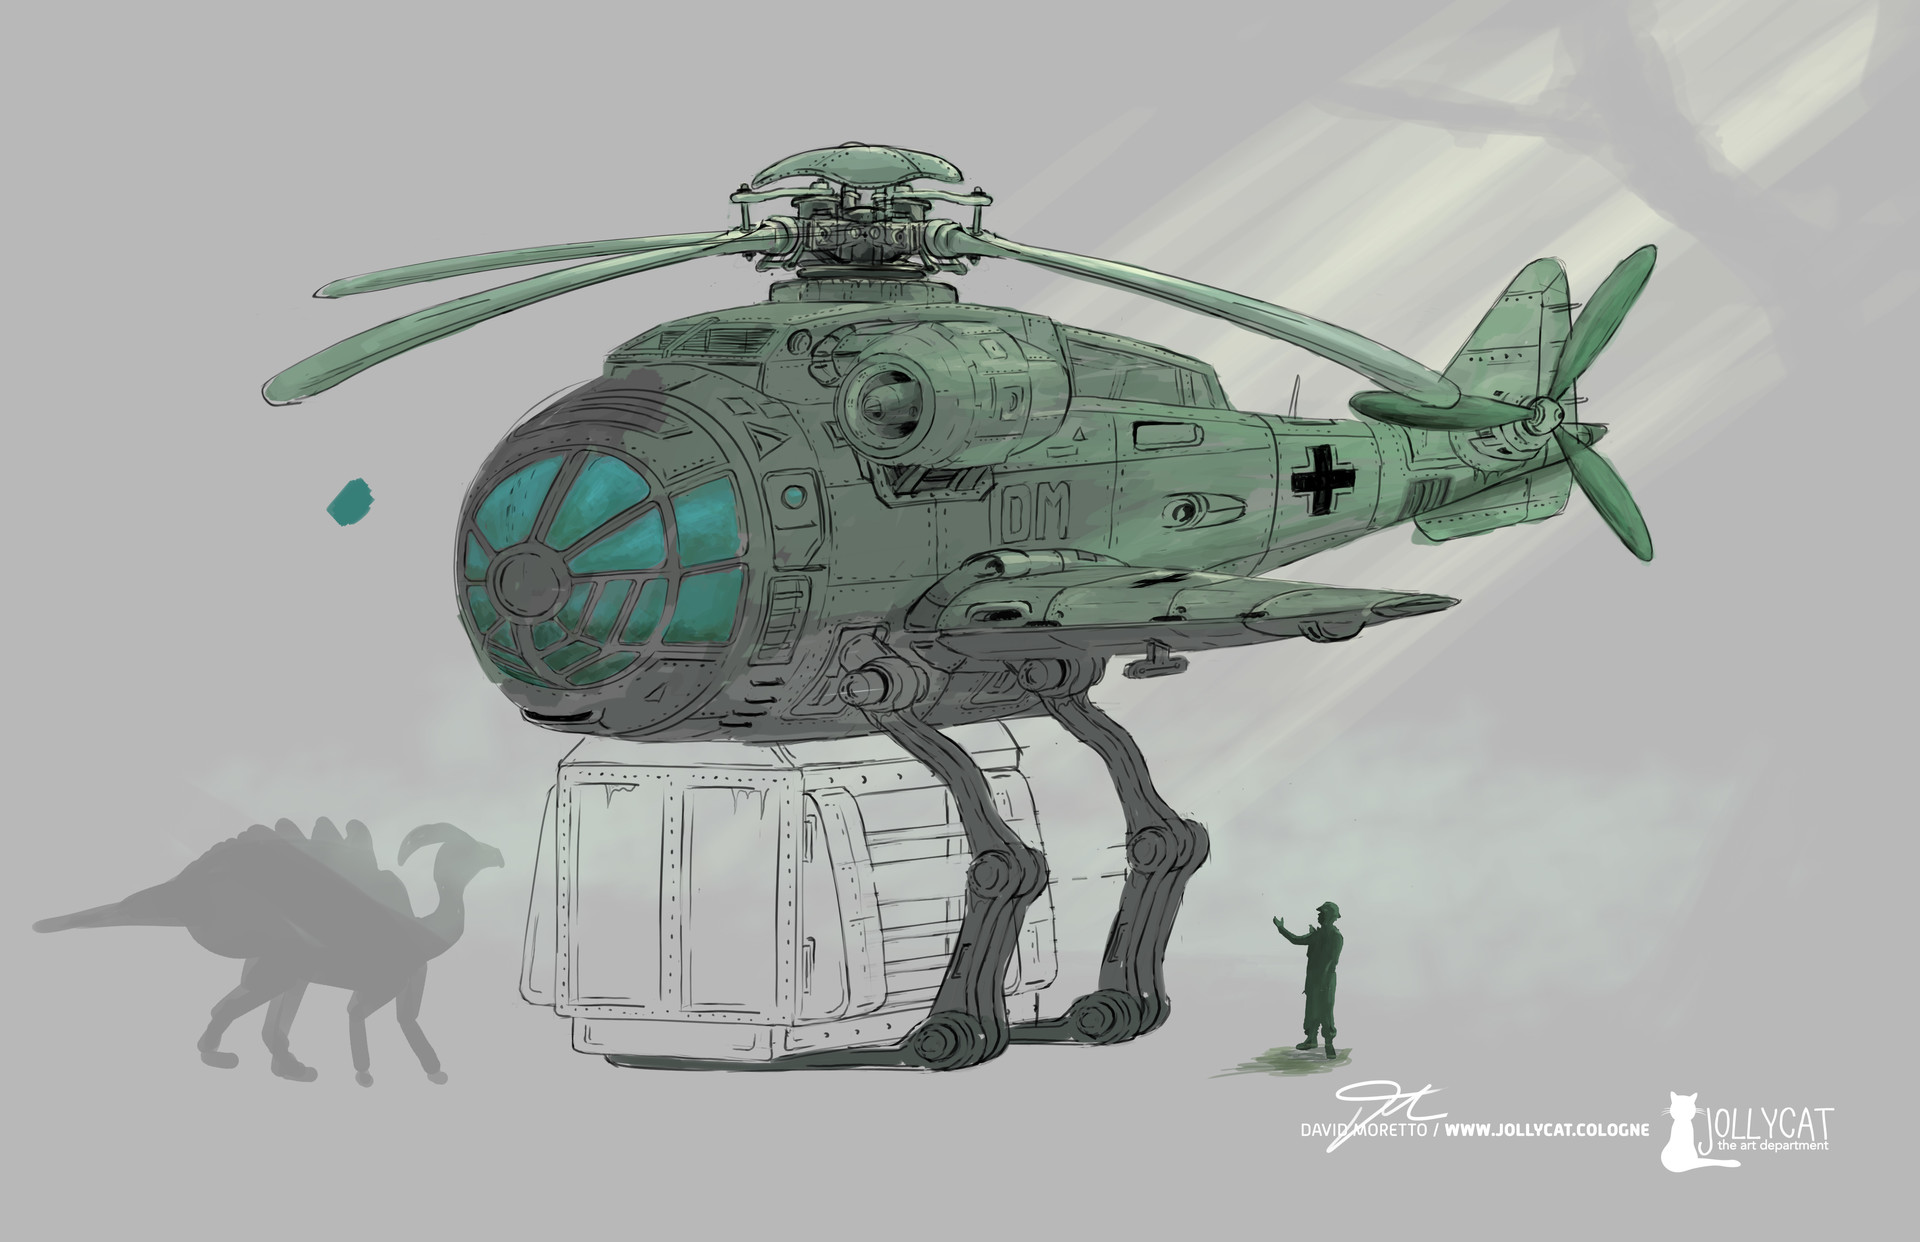 David moretto gottesgreifer conceptart 002